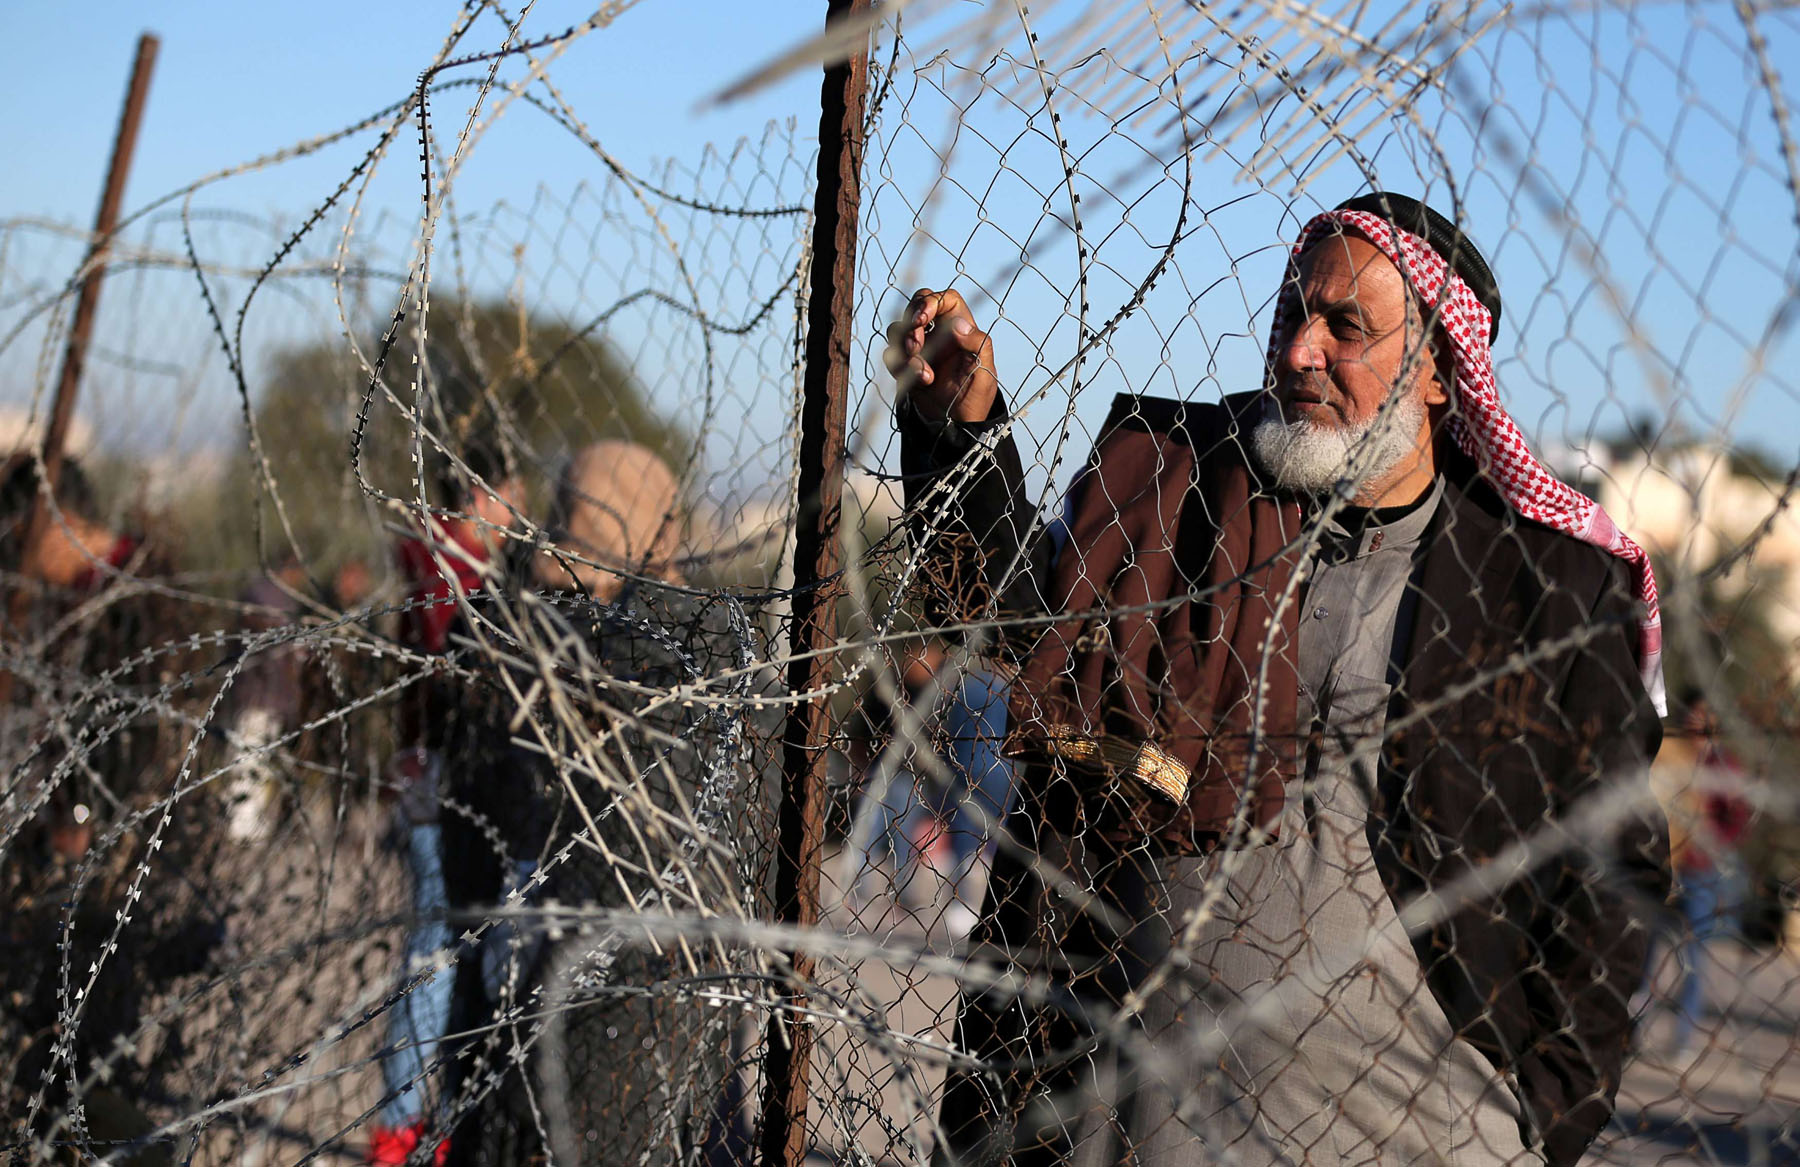 Out of focus. A Palestinian man stands by a fence as he waits for a travel permit to leave Gaza through the Rafah border crossing with Egypt. (Reuters)